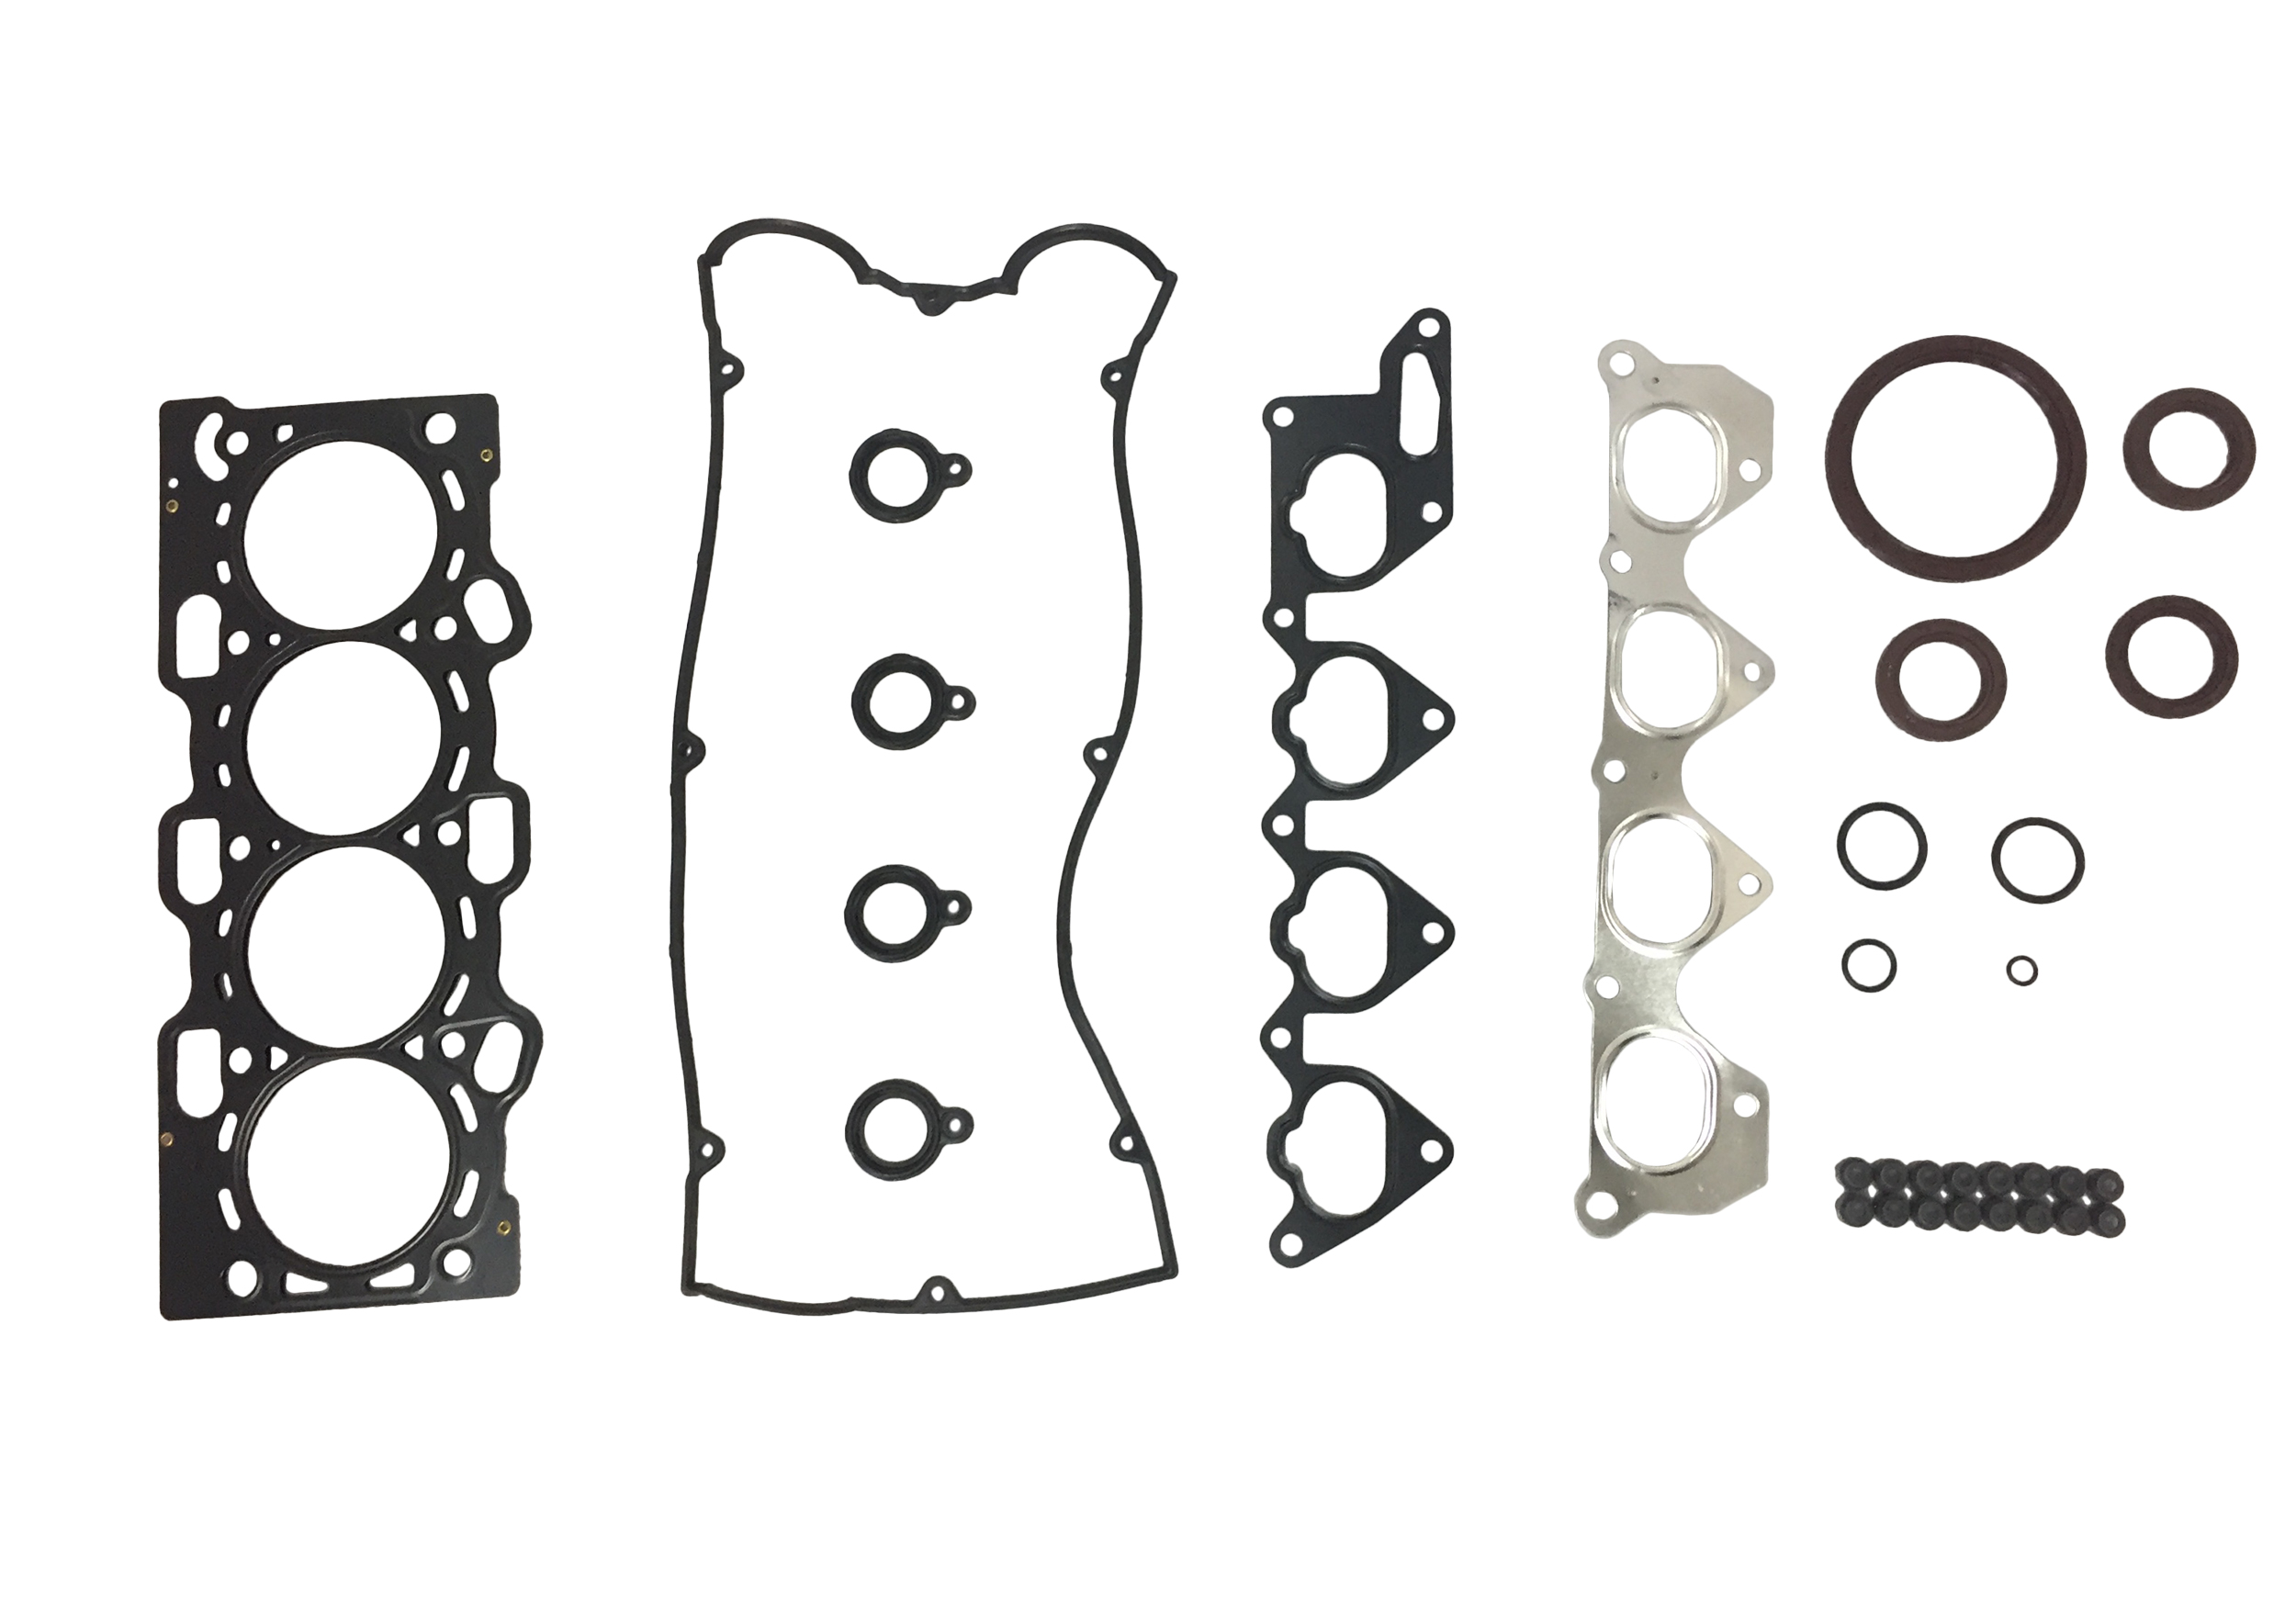 Gasket set cylinder head gasket Mitsubishi Lancer 1.8 16V 4G93T MD330500 NEW